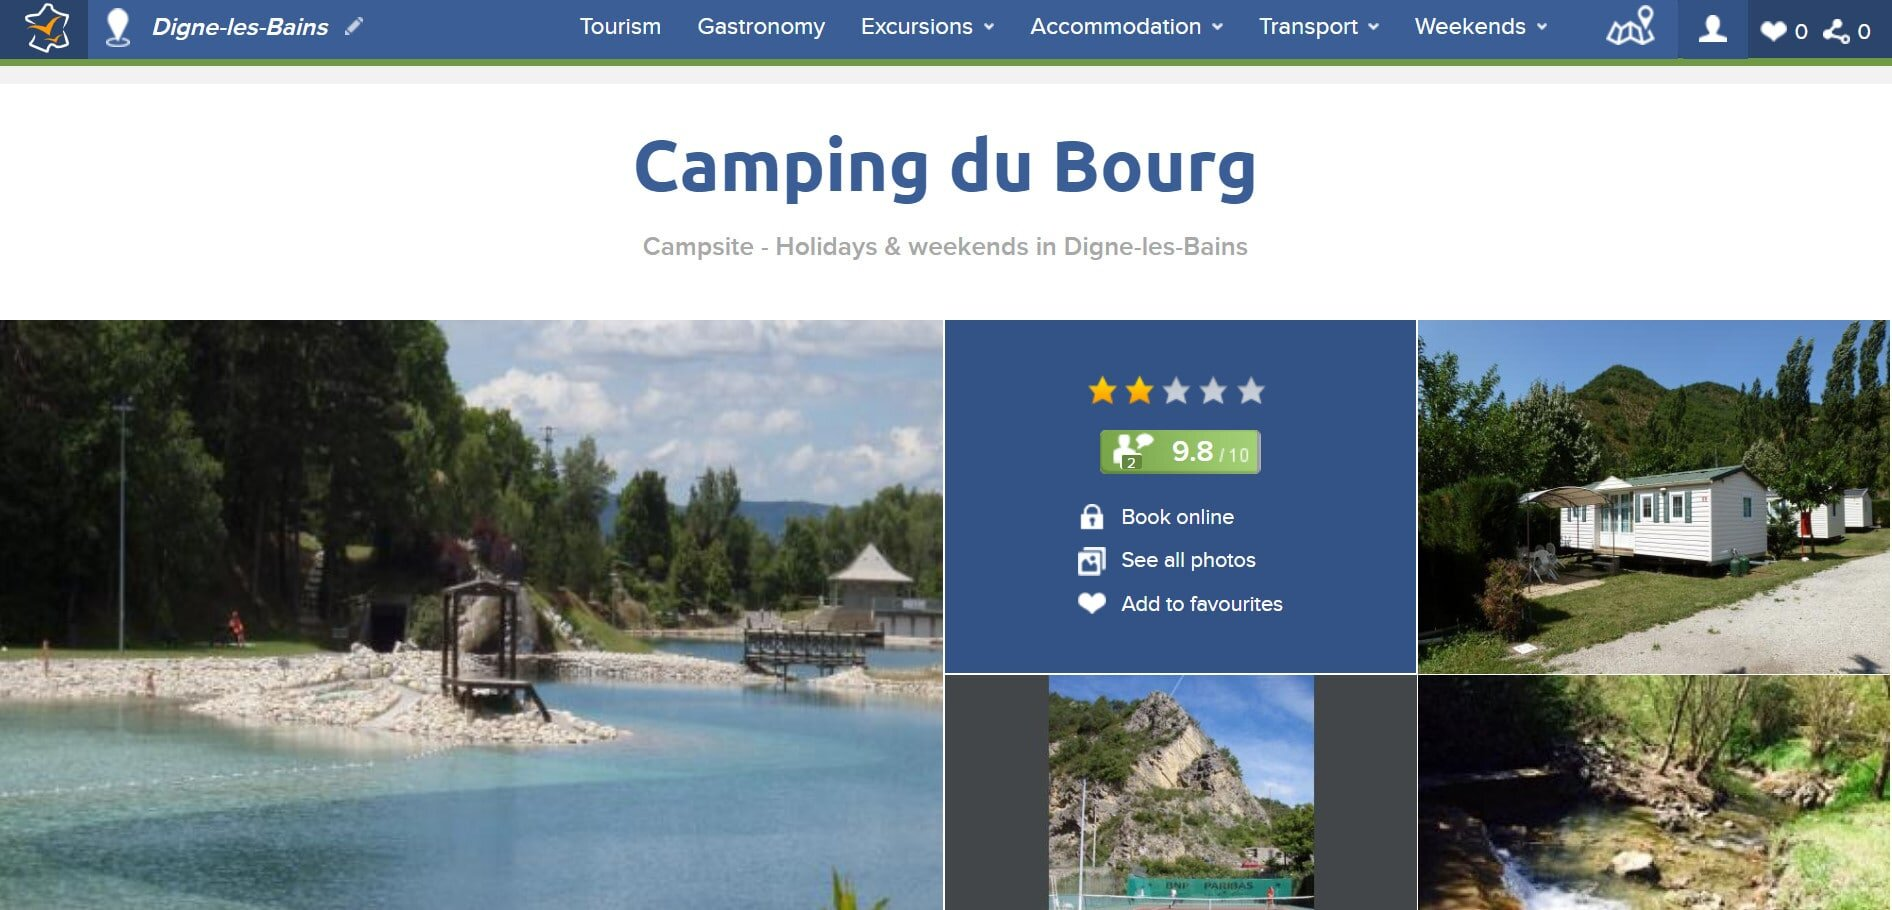 Anybody looking for budget camping south of France should check out Camping Du Bourg!